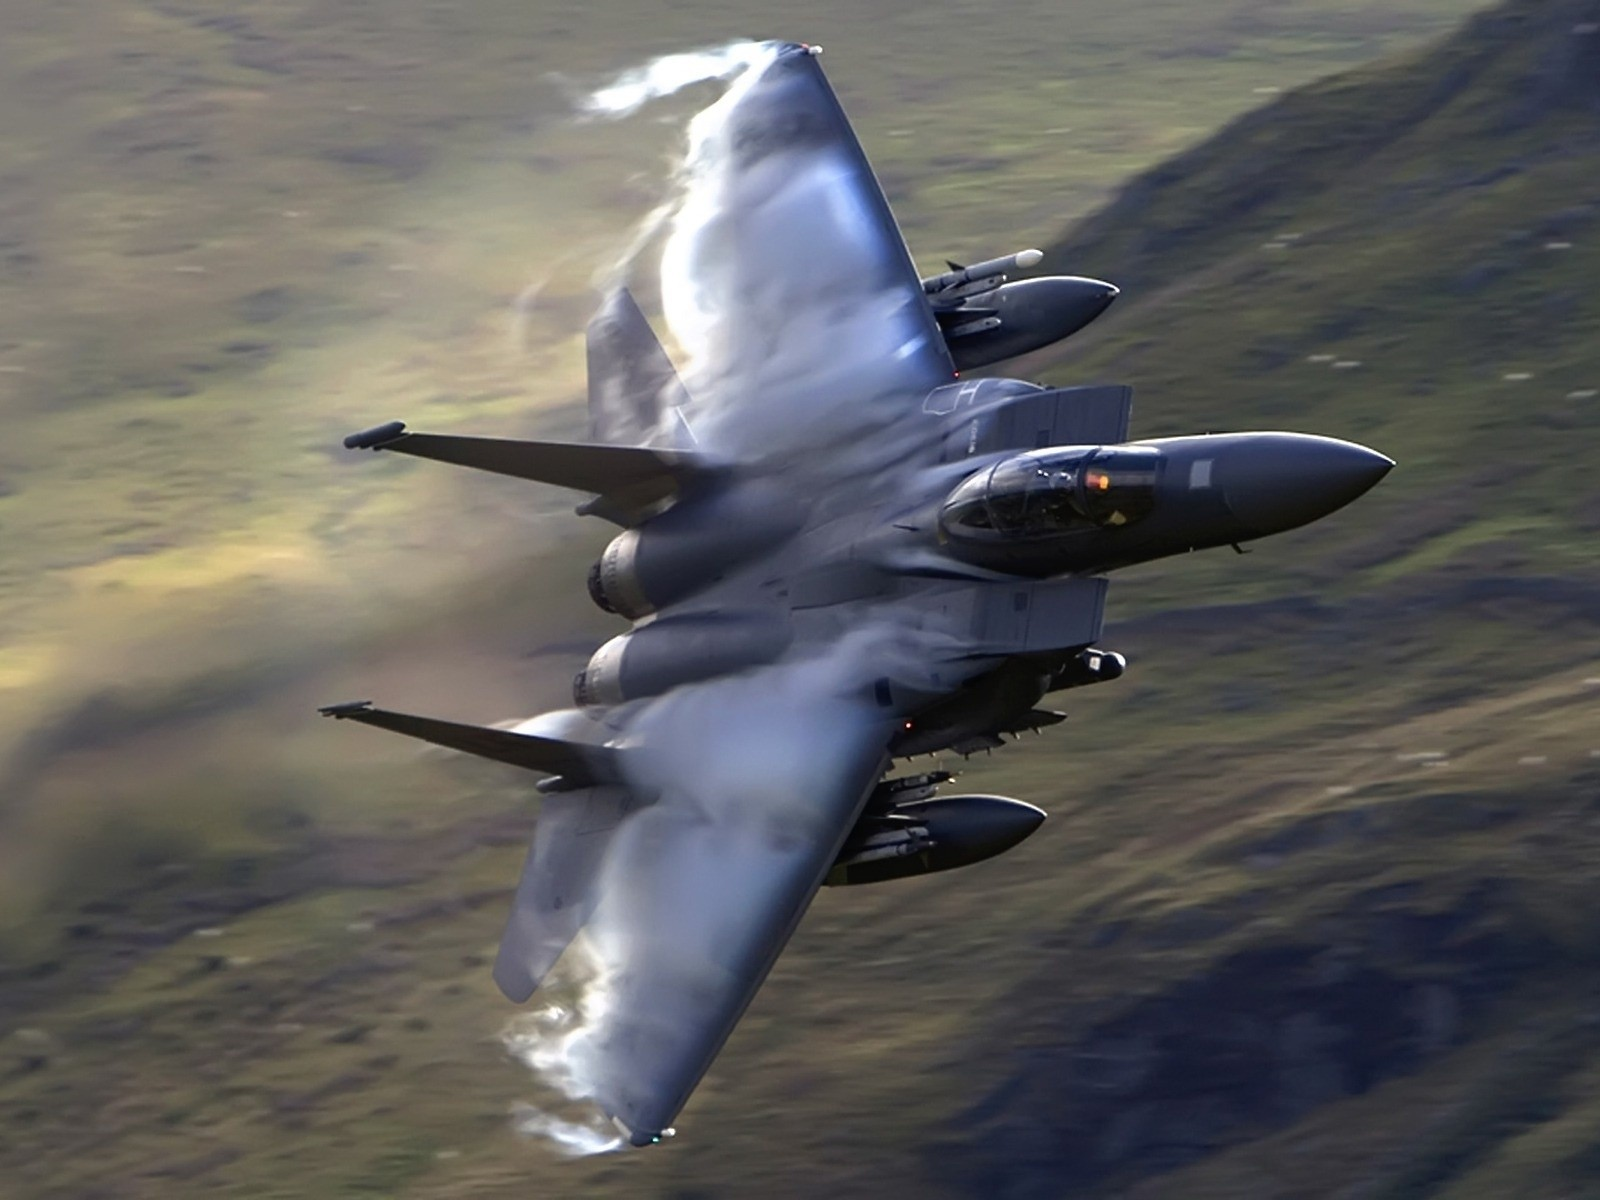 f-15 eagle jet aircraft HD Wallpaper